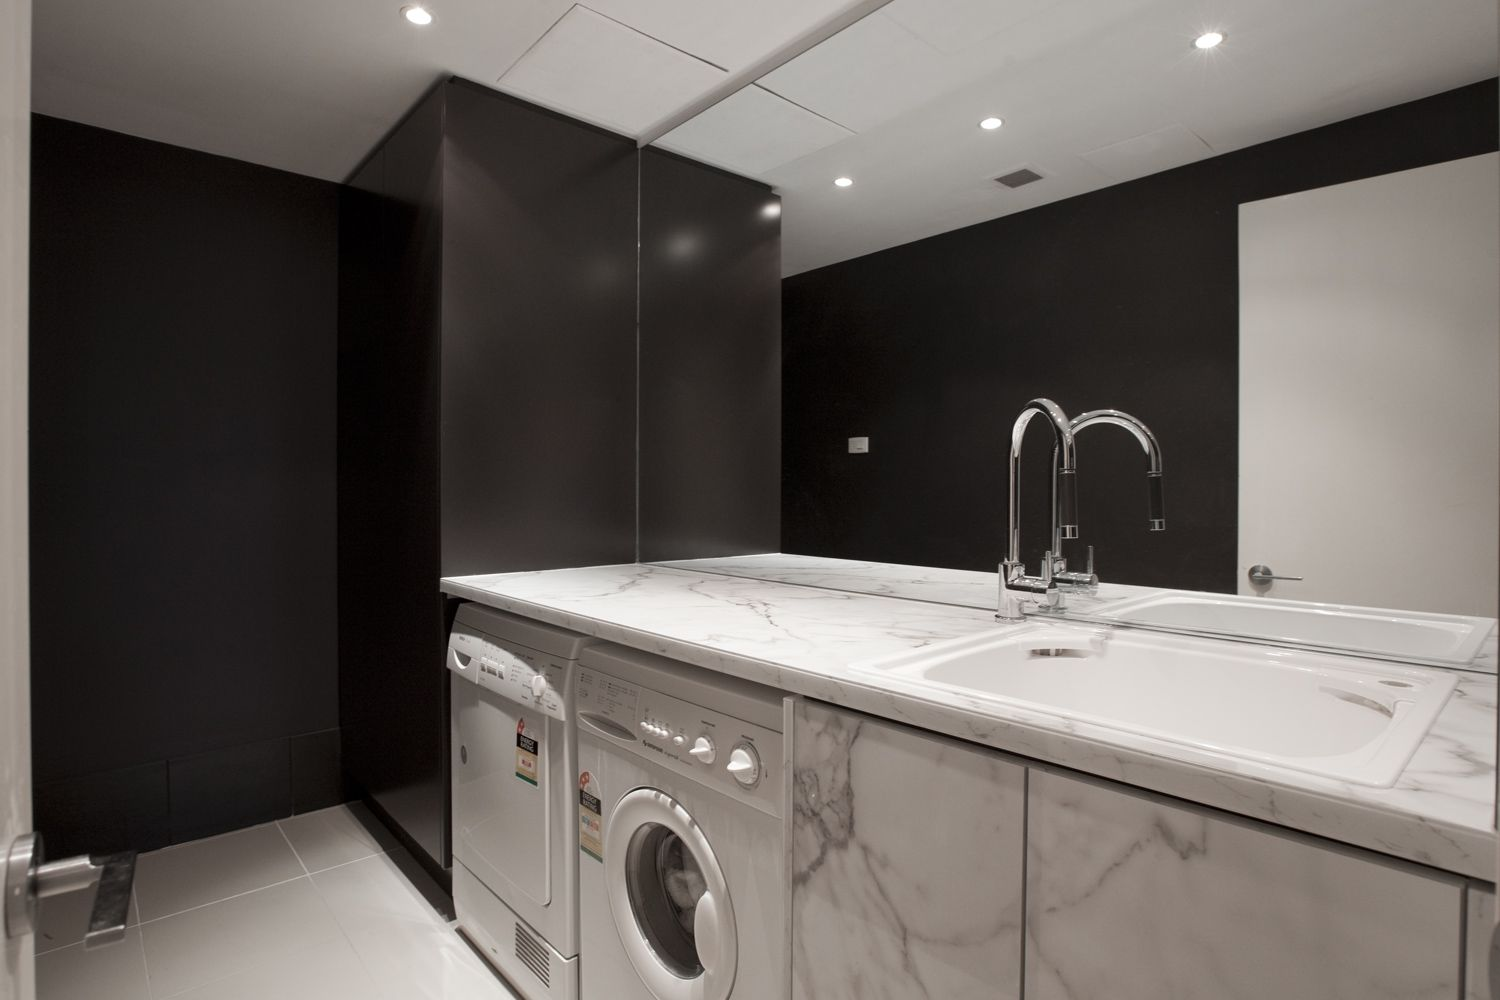 Brisbane laundry renovations laundry design ideas ine bathrooms - Laundry Room Featuring Formica In Calacatta Marble Use Formica As An Affordable Alternative To Marble